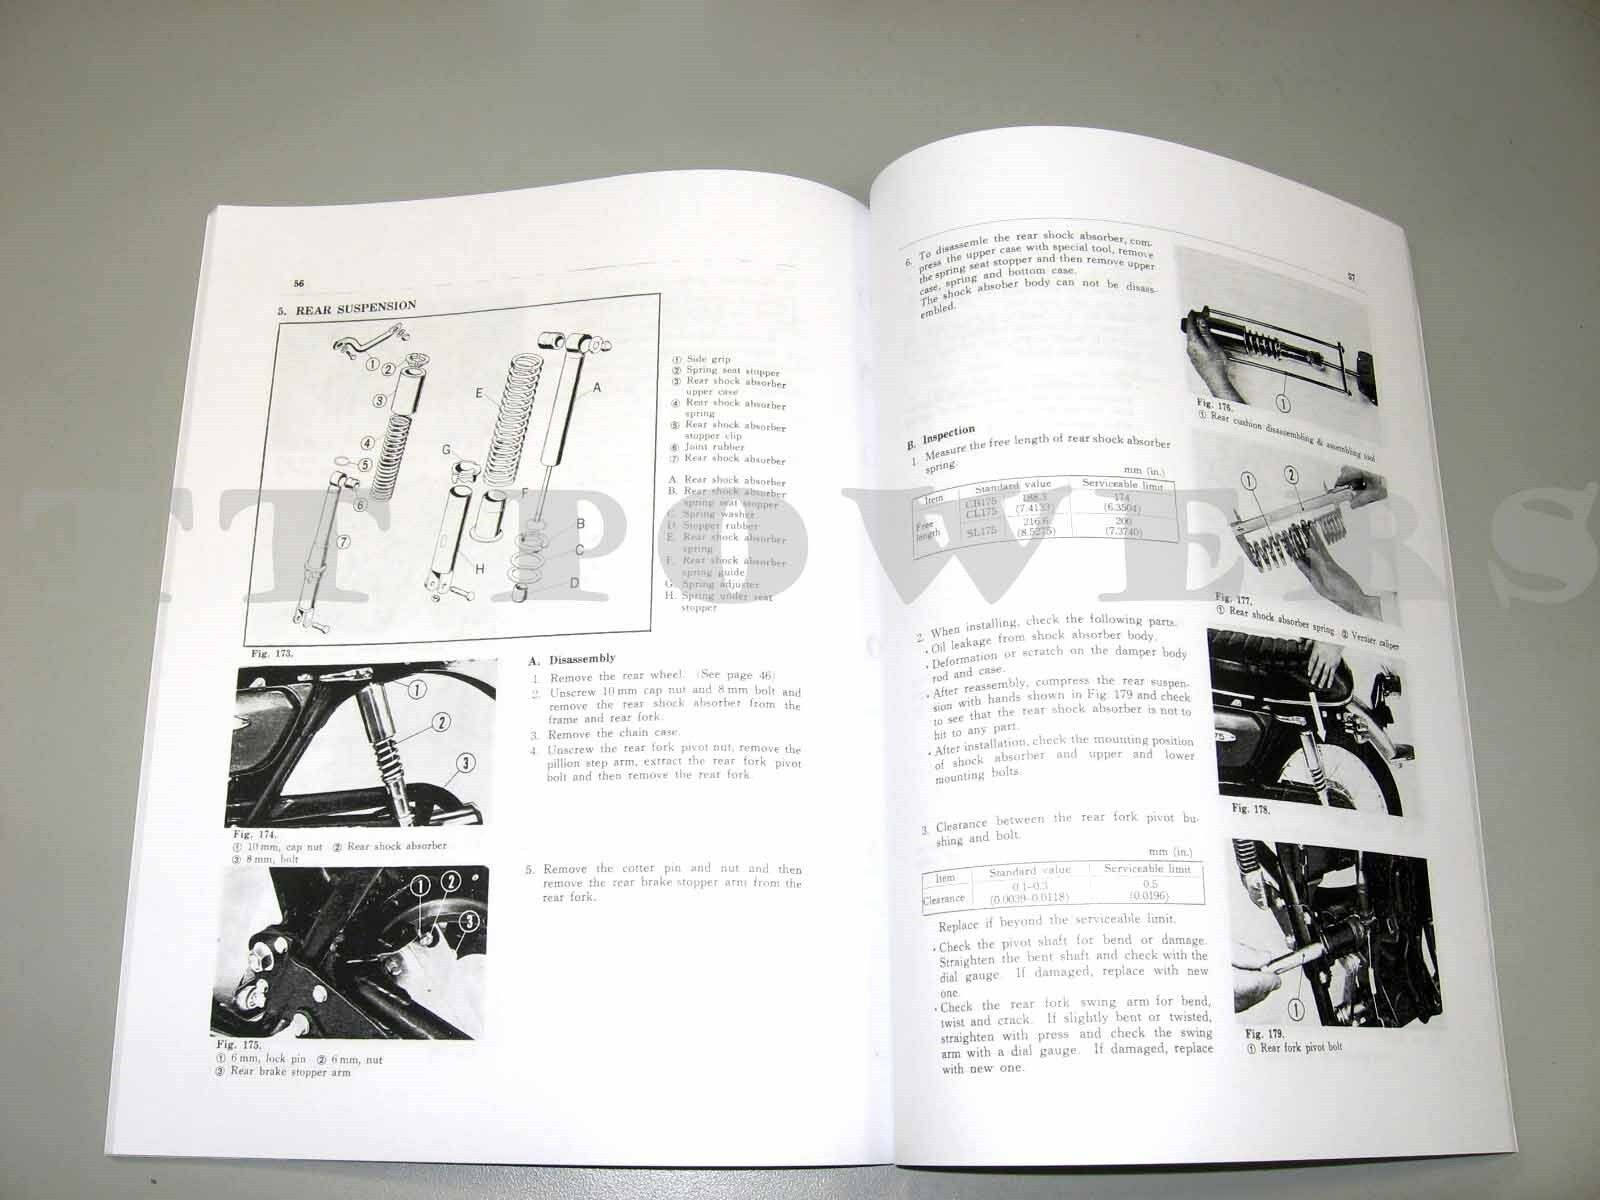 Honda Shop Service Repair Manual 175 Cb175 Cl175 Sl175 Ebay 1971 Wiring Diagram Norton Secured Powered By Verisign